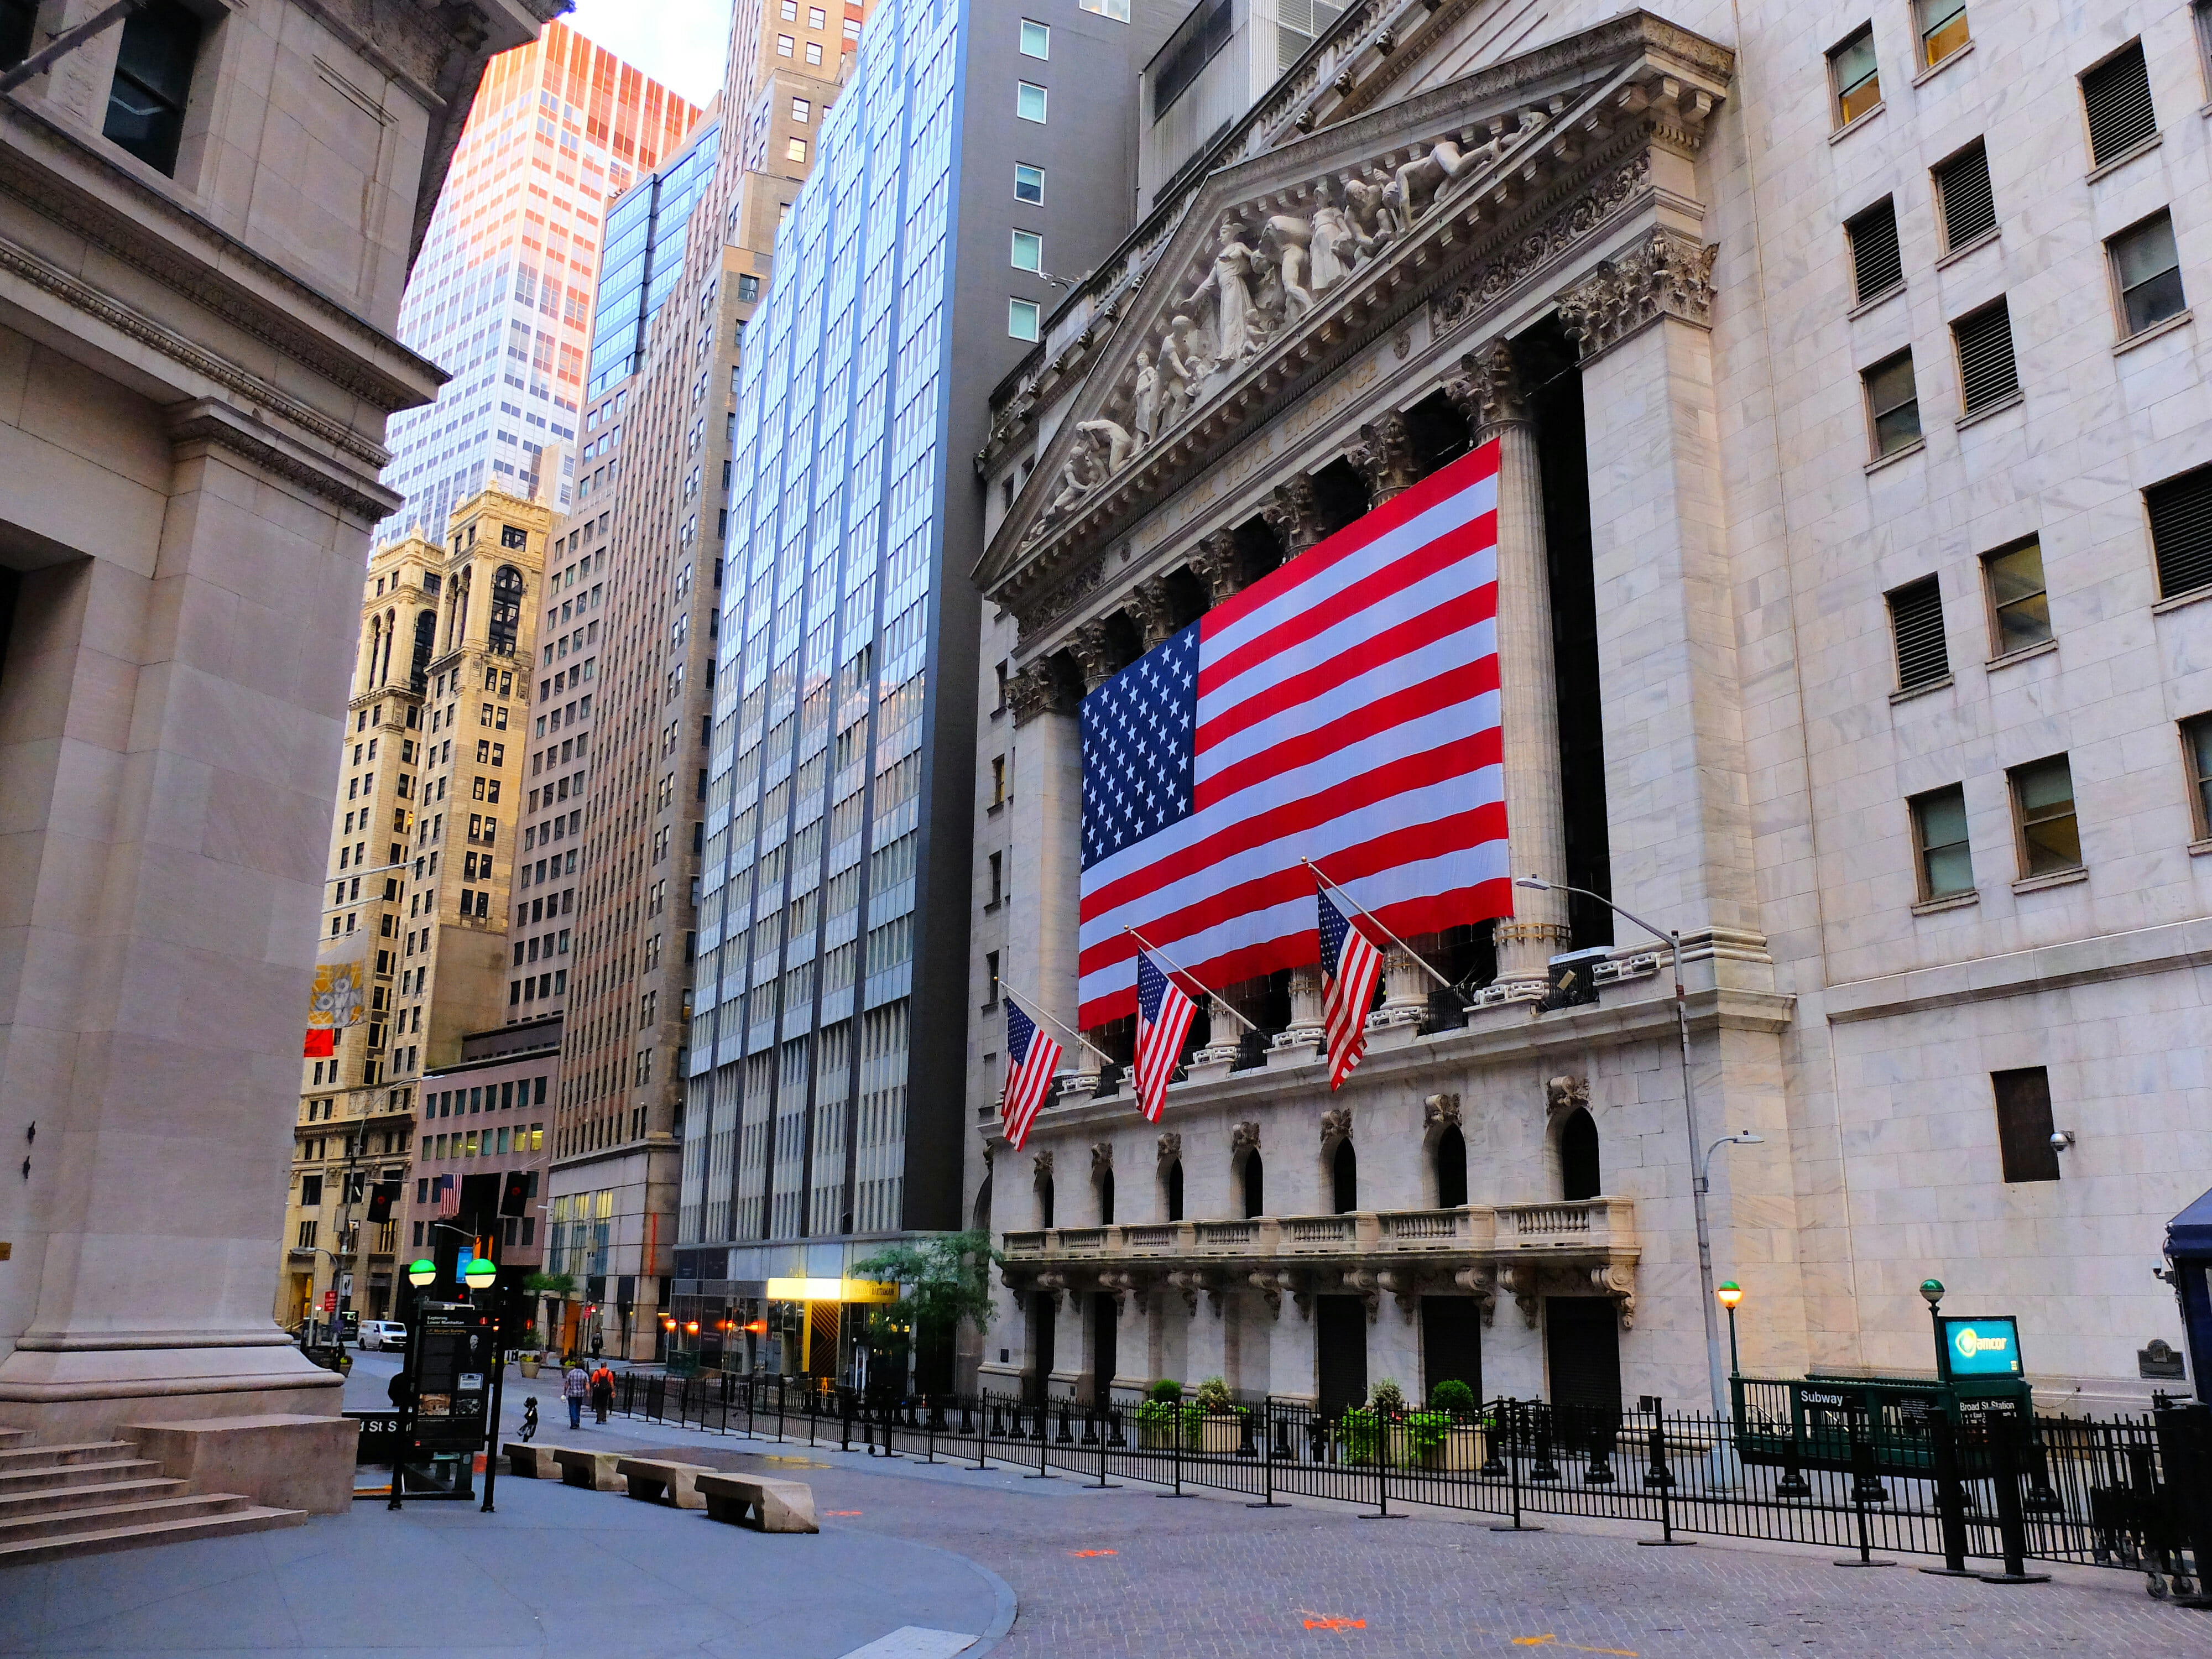 Wall Street Stock Exchange Flag in New York – High Quality Wallpaper